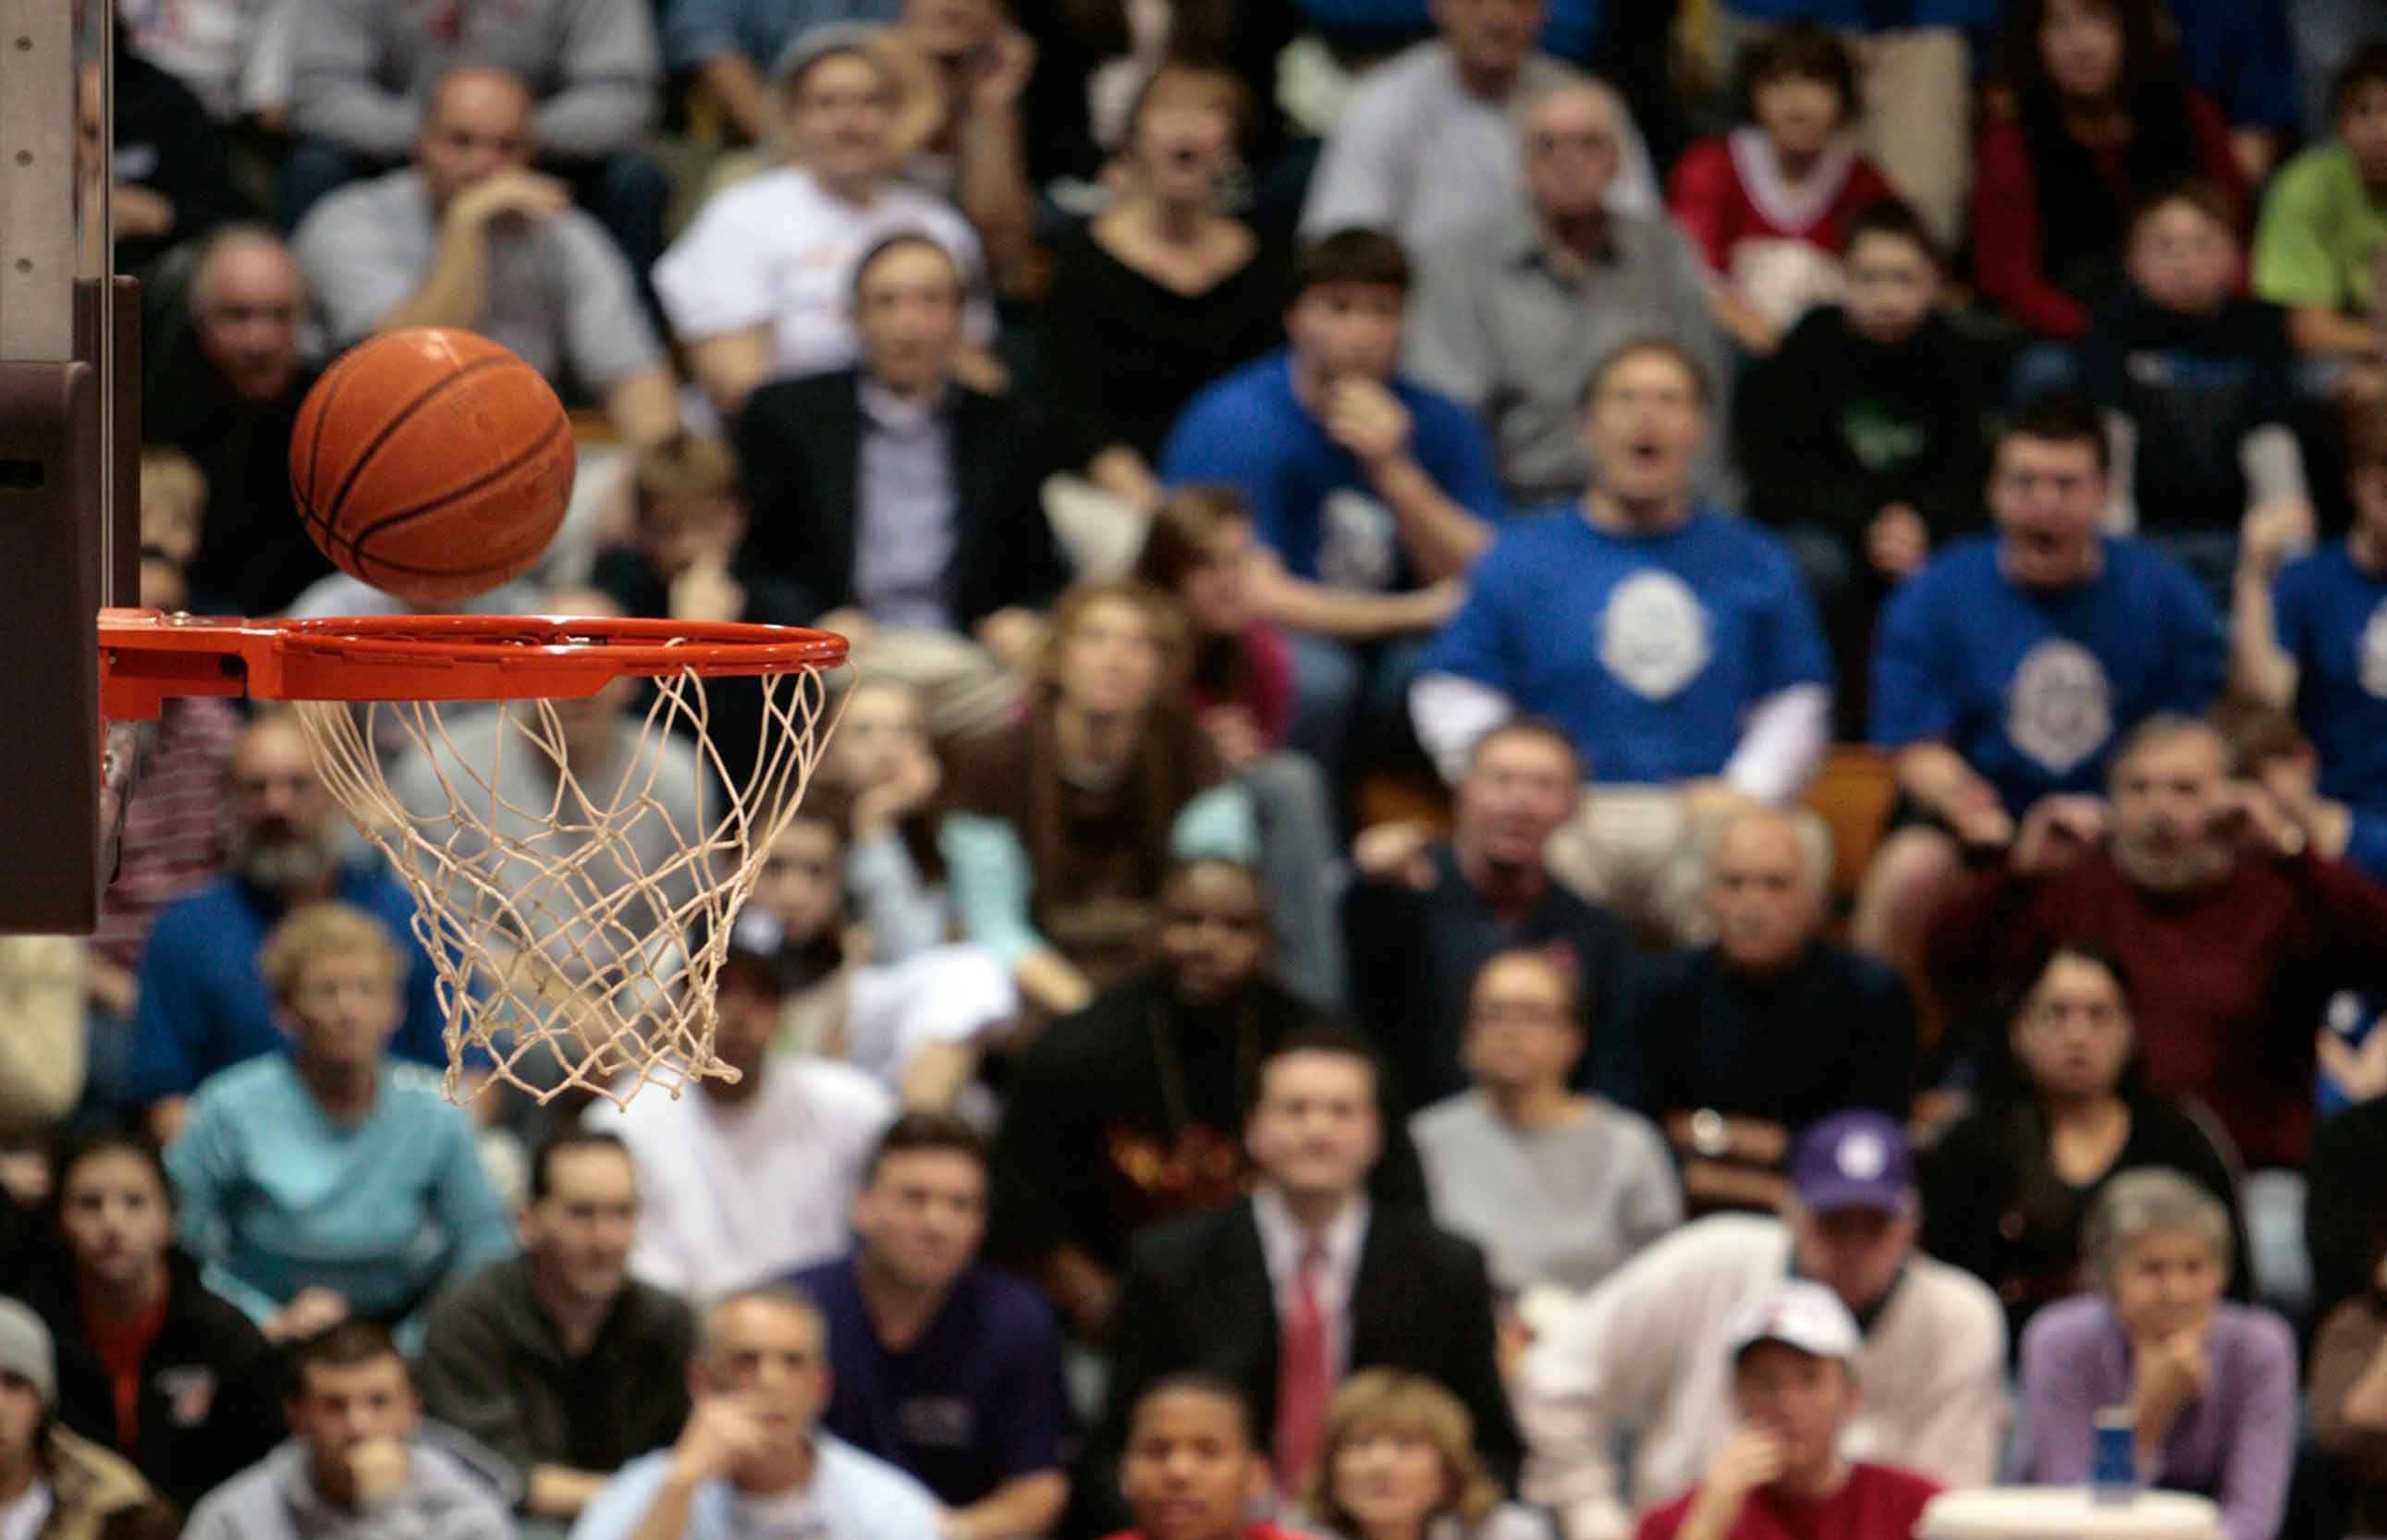 March Madness doesn't have to break the bank. Here are easy ways to save money while following college basketball's biggest event.